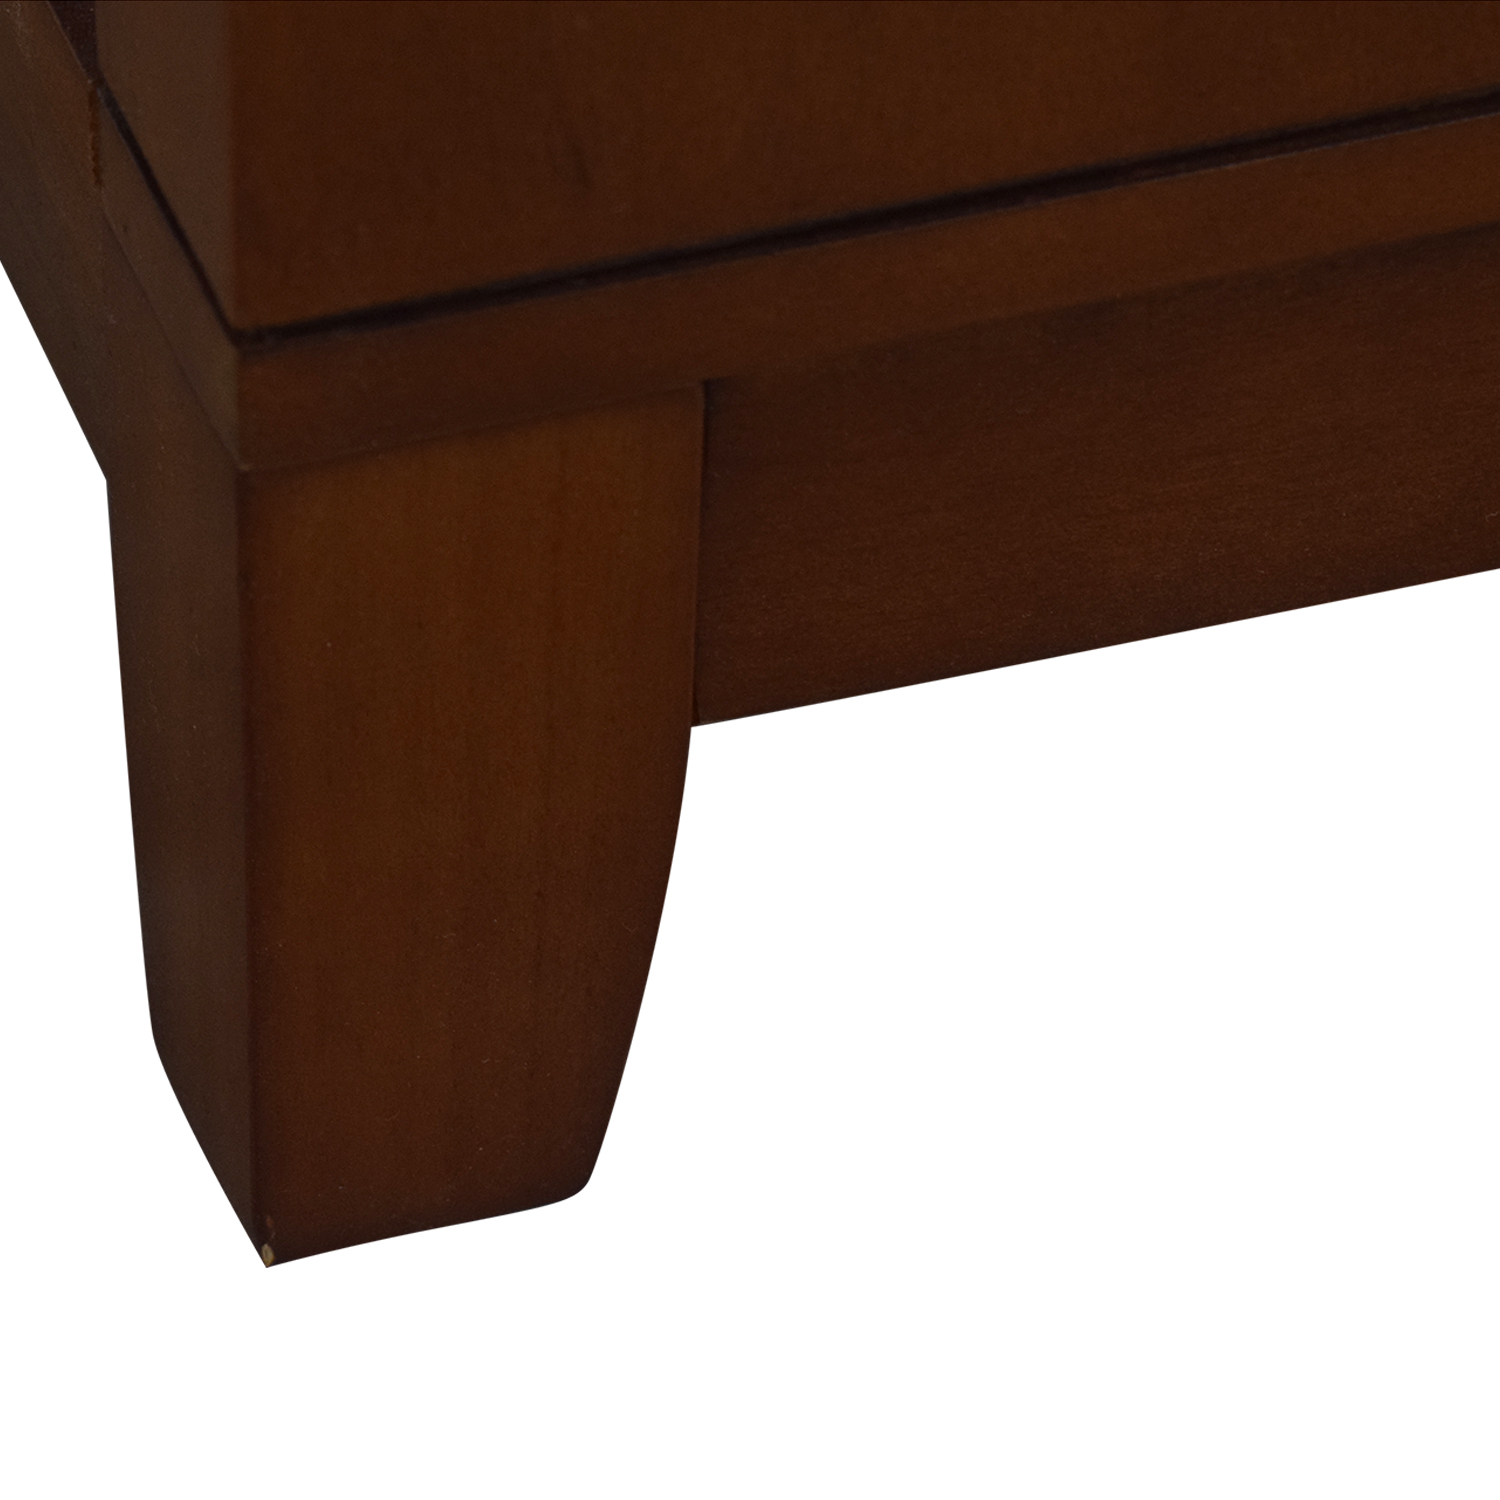 Raymour & Flanigan Wood and Glass Media Console sale